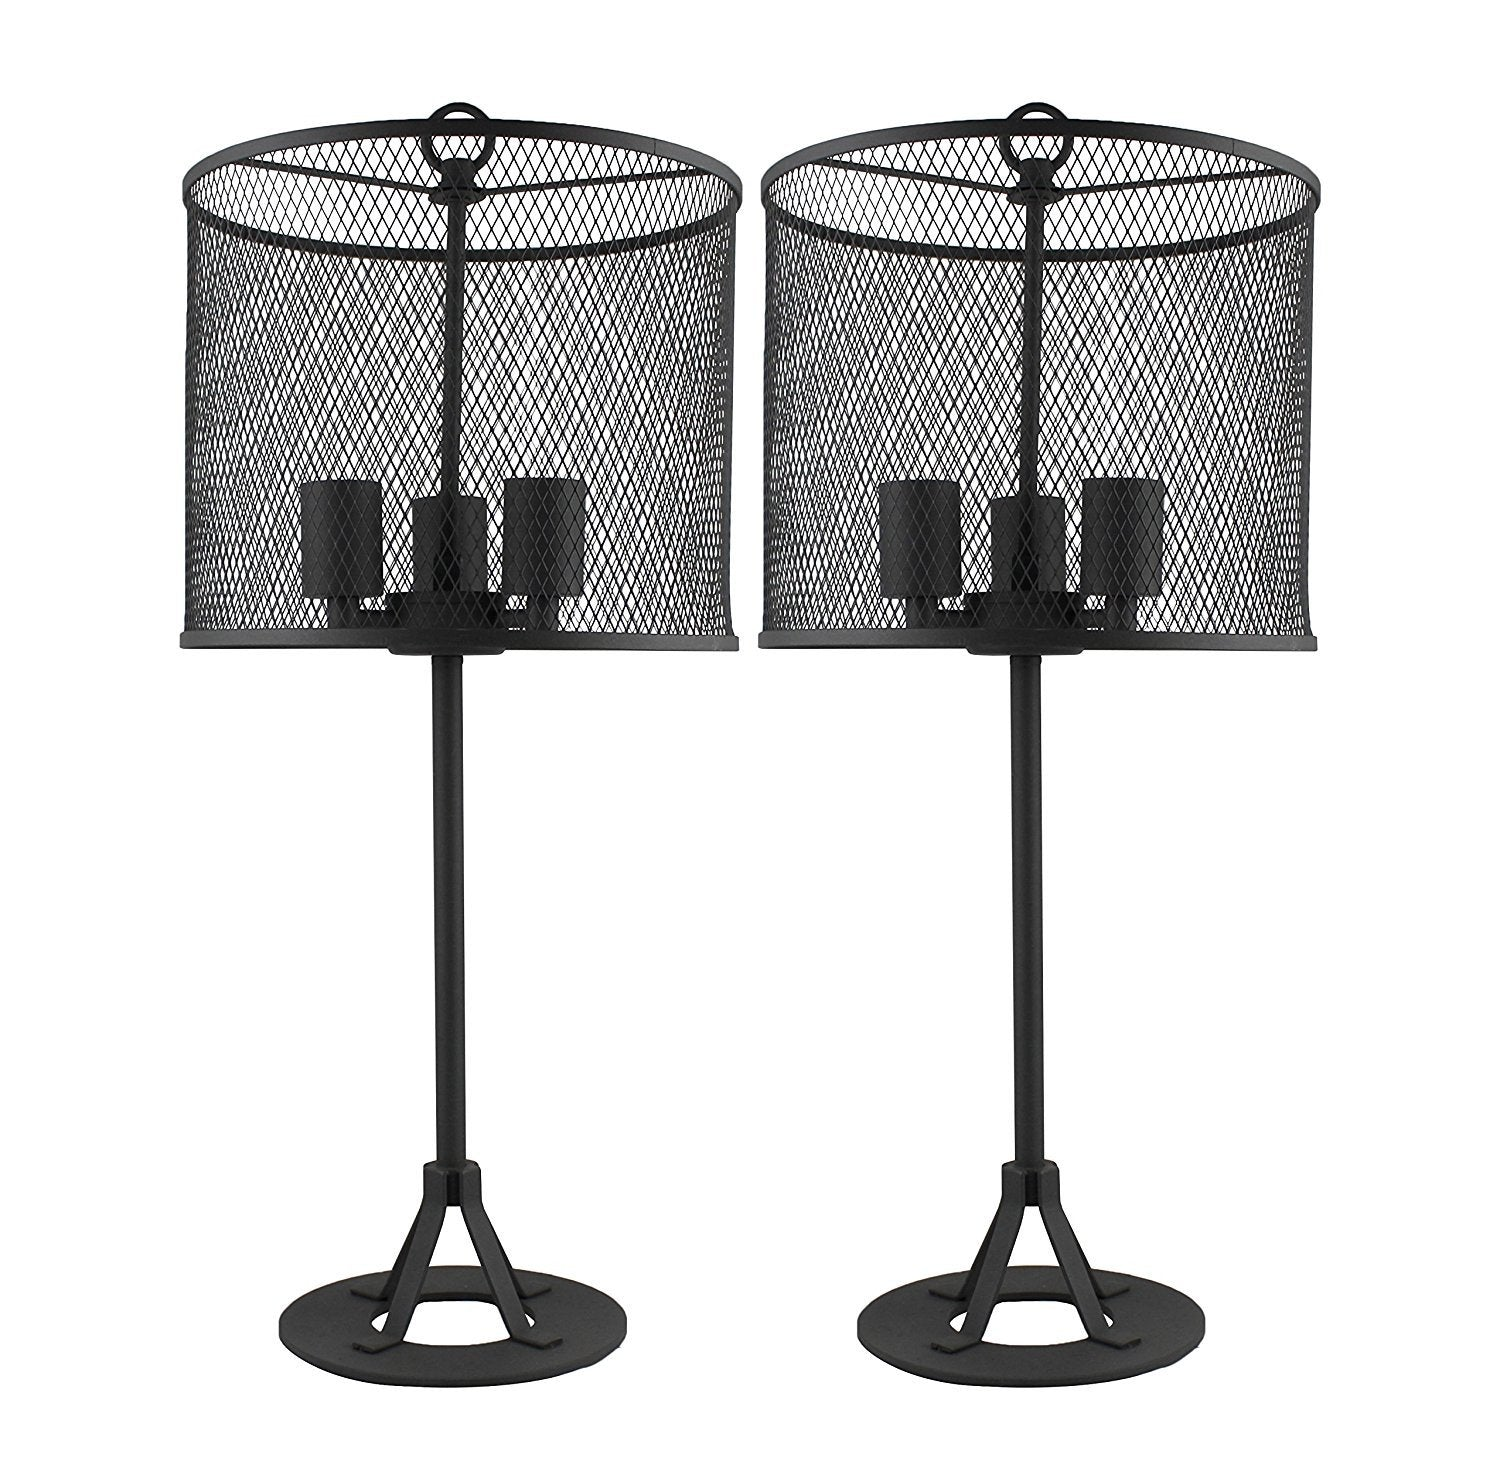 "Set of 2 Pullman Table Lamps, 34 1/2"" Tall"